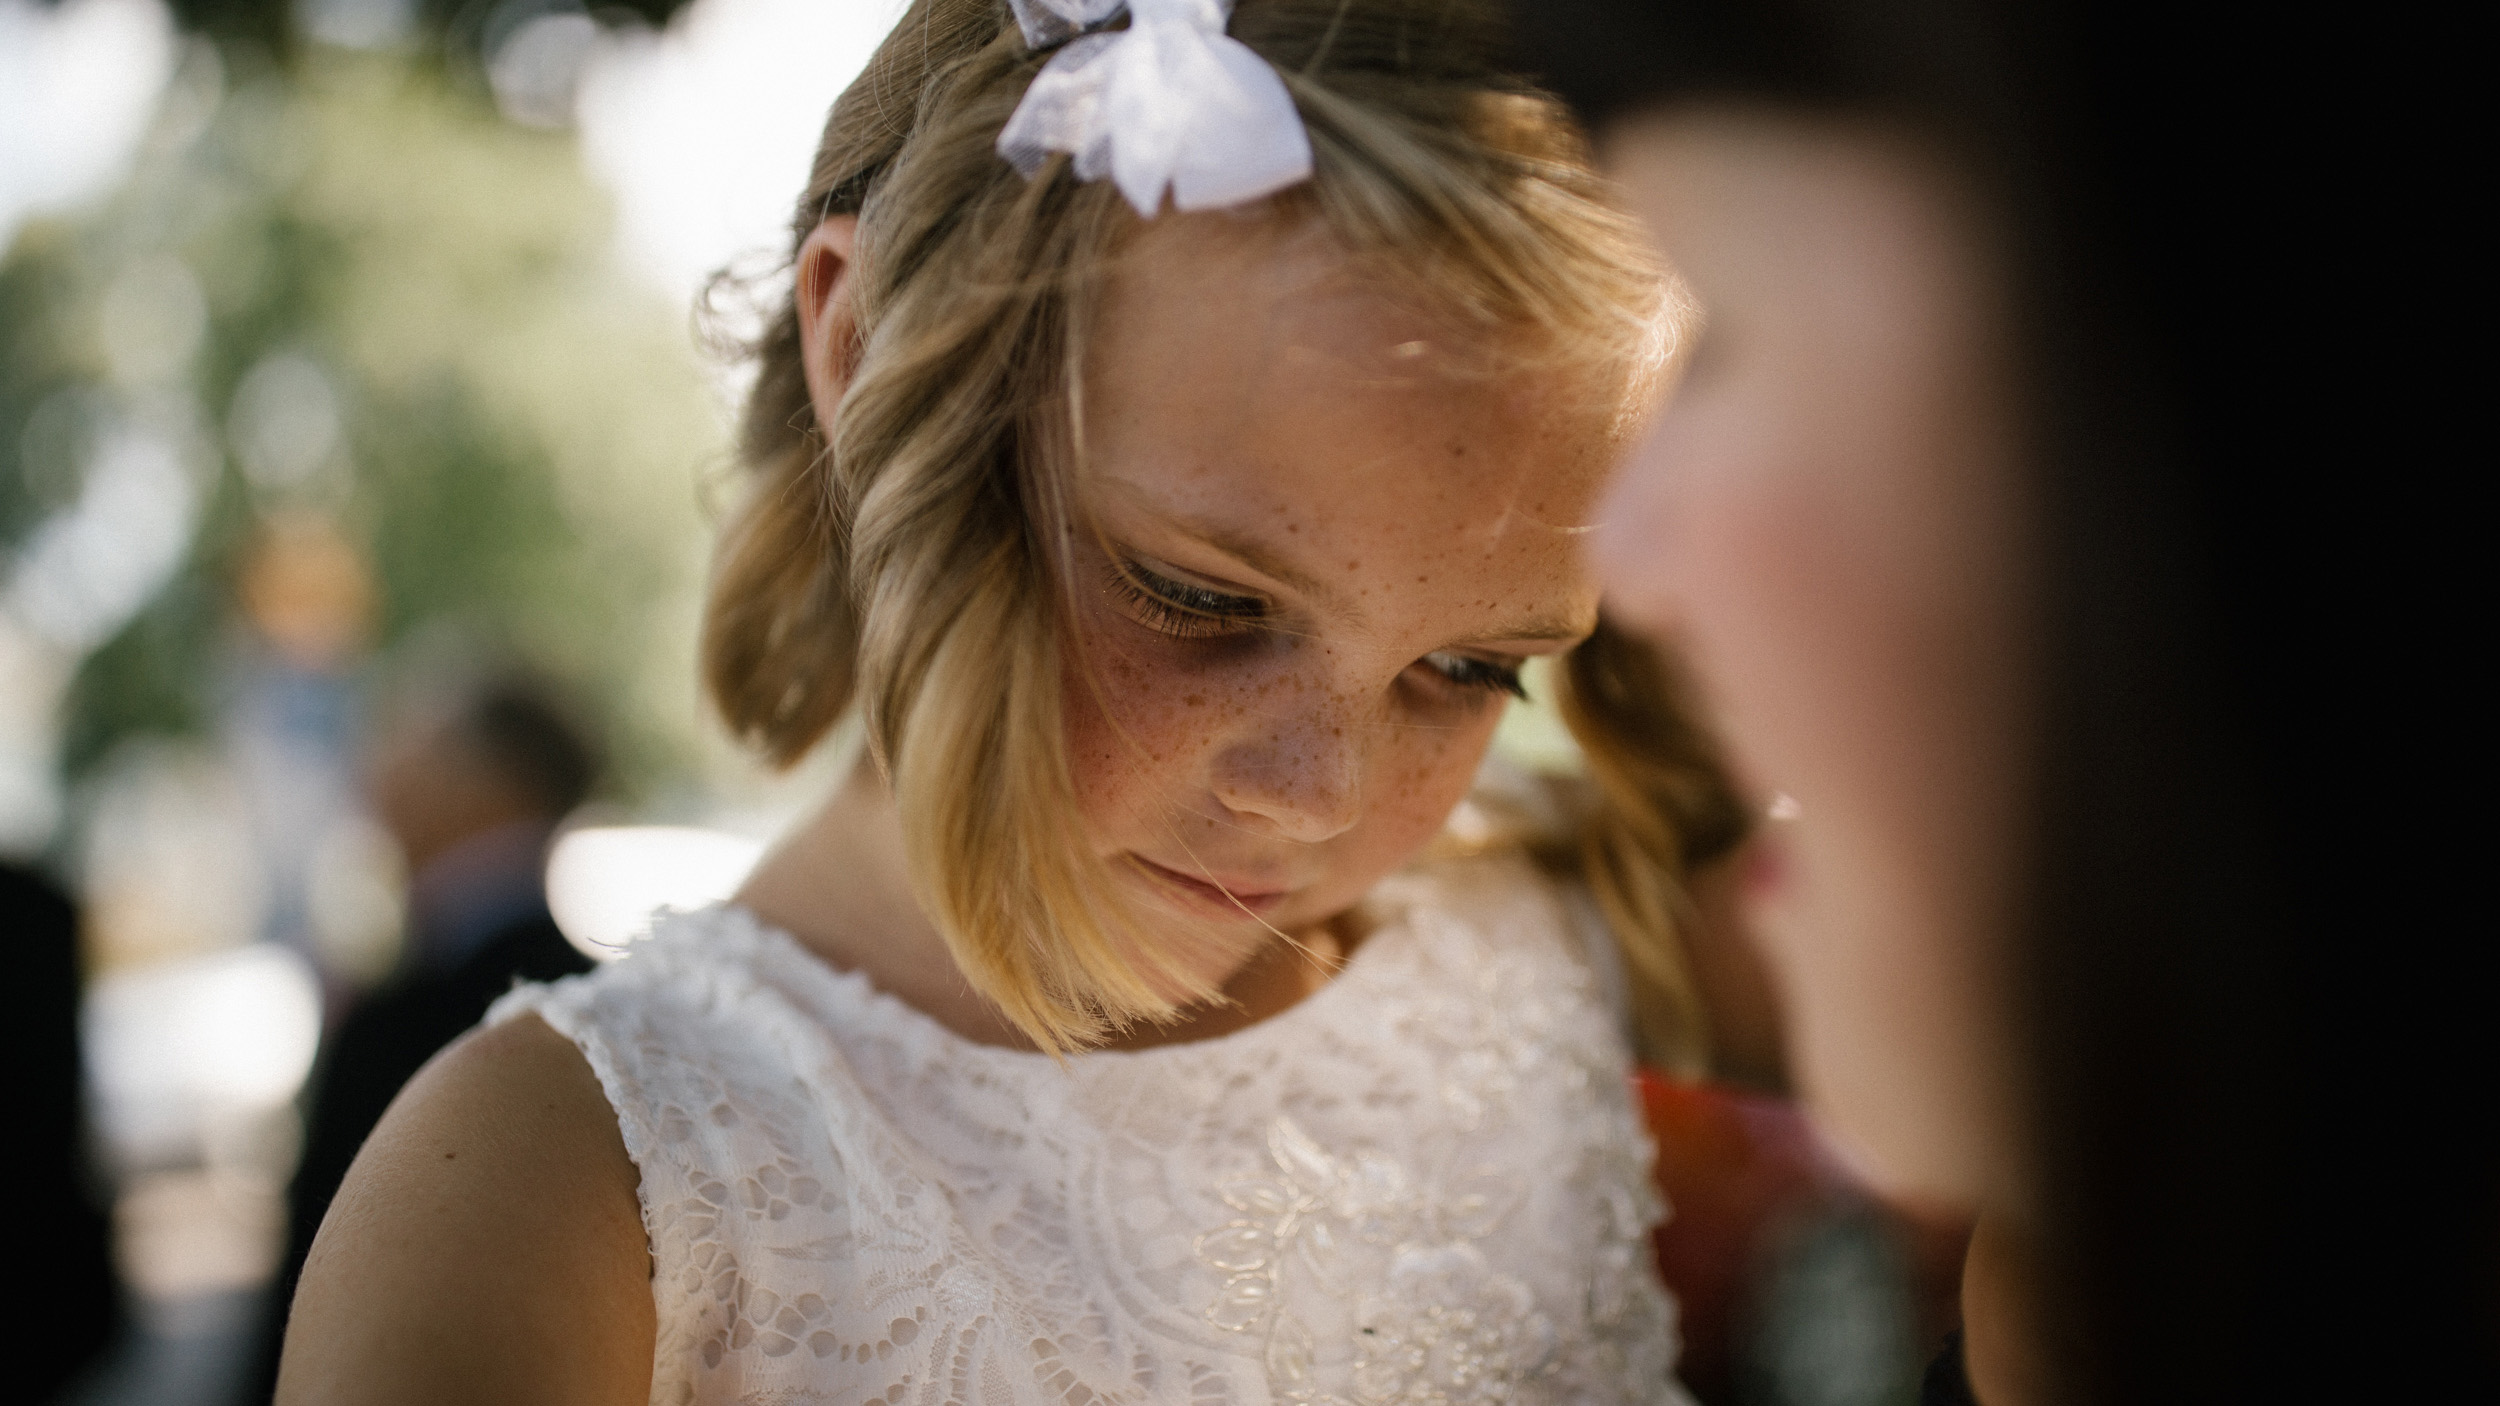 alec_vanderboom_john_micahel_lucy_kansas_city_wedding_photographer-0039.jpg